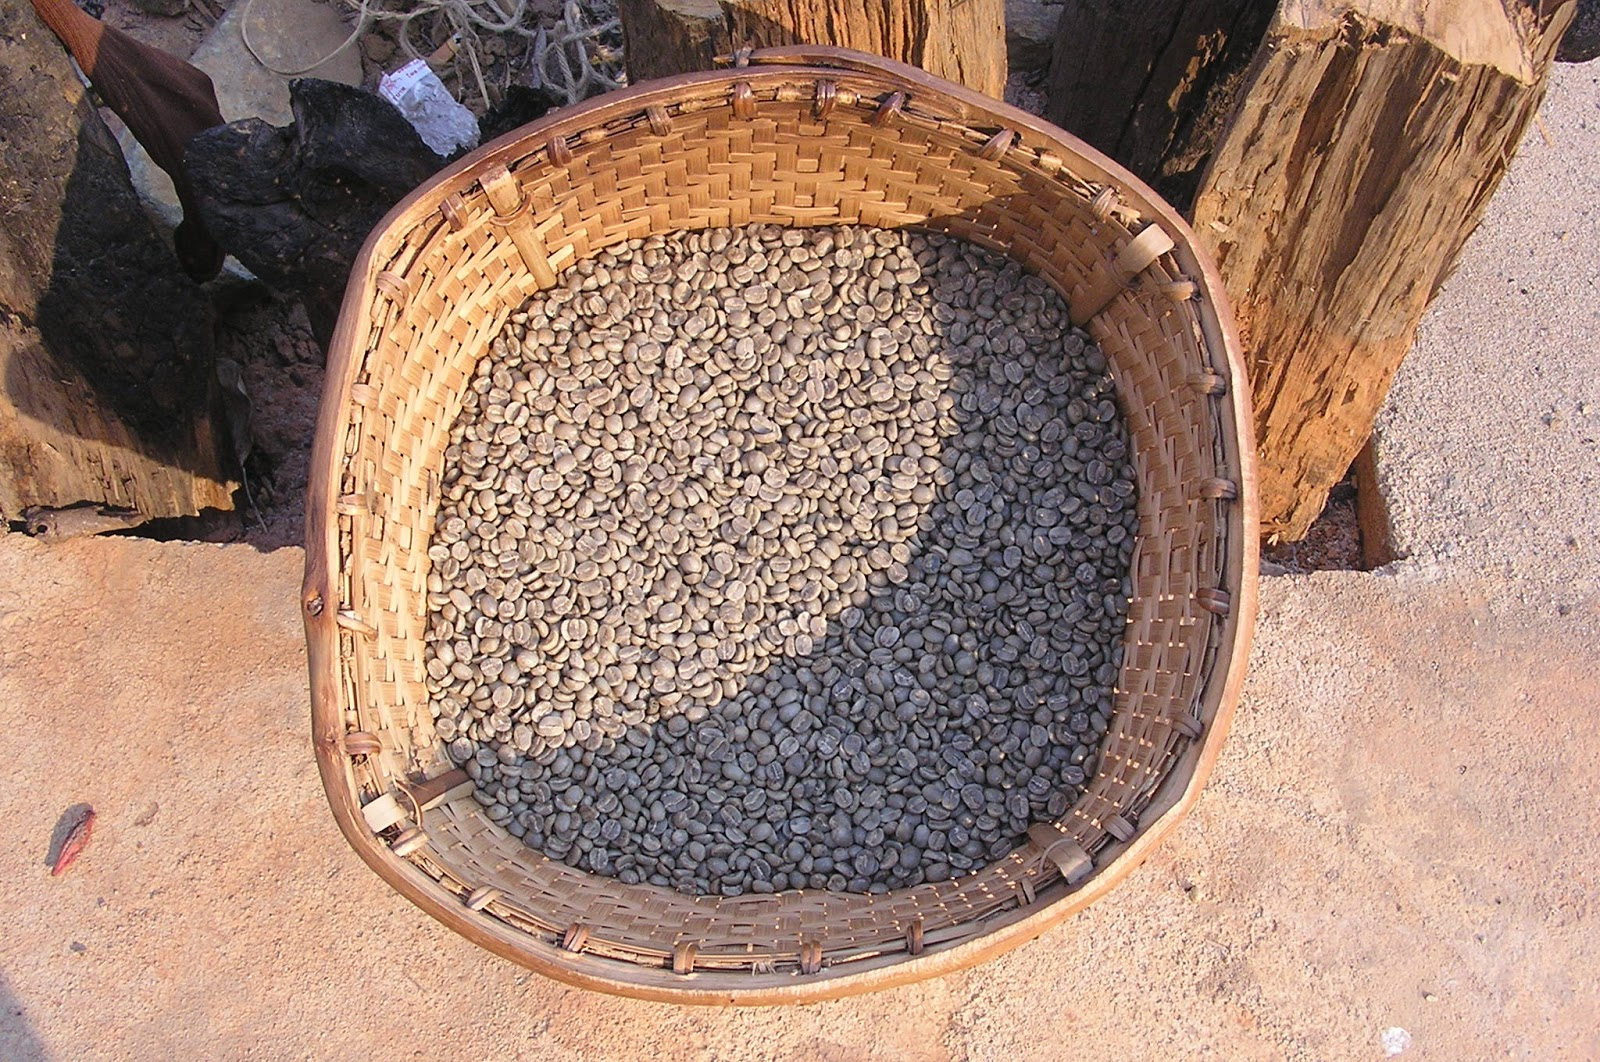 raw coffee beans placed in a rattan basket